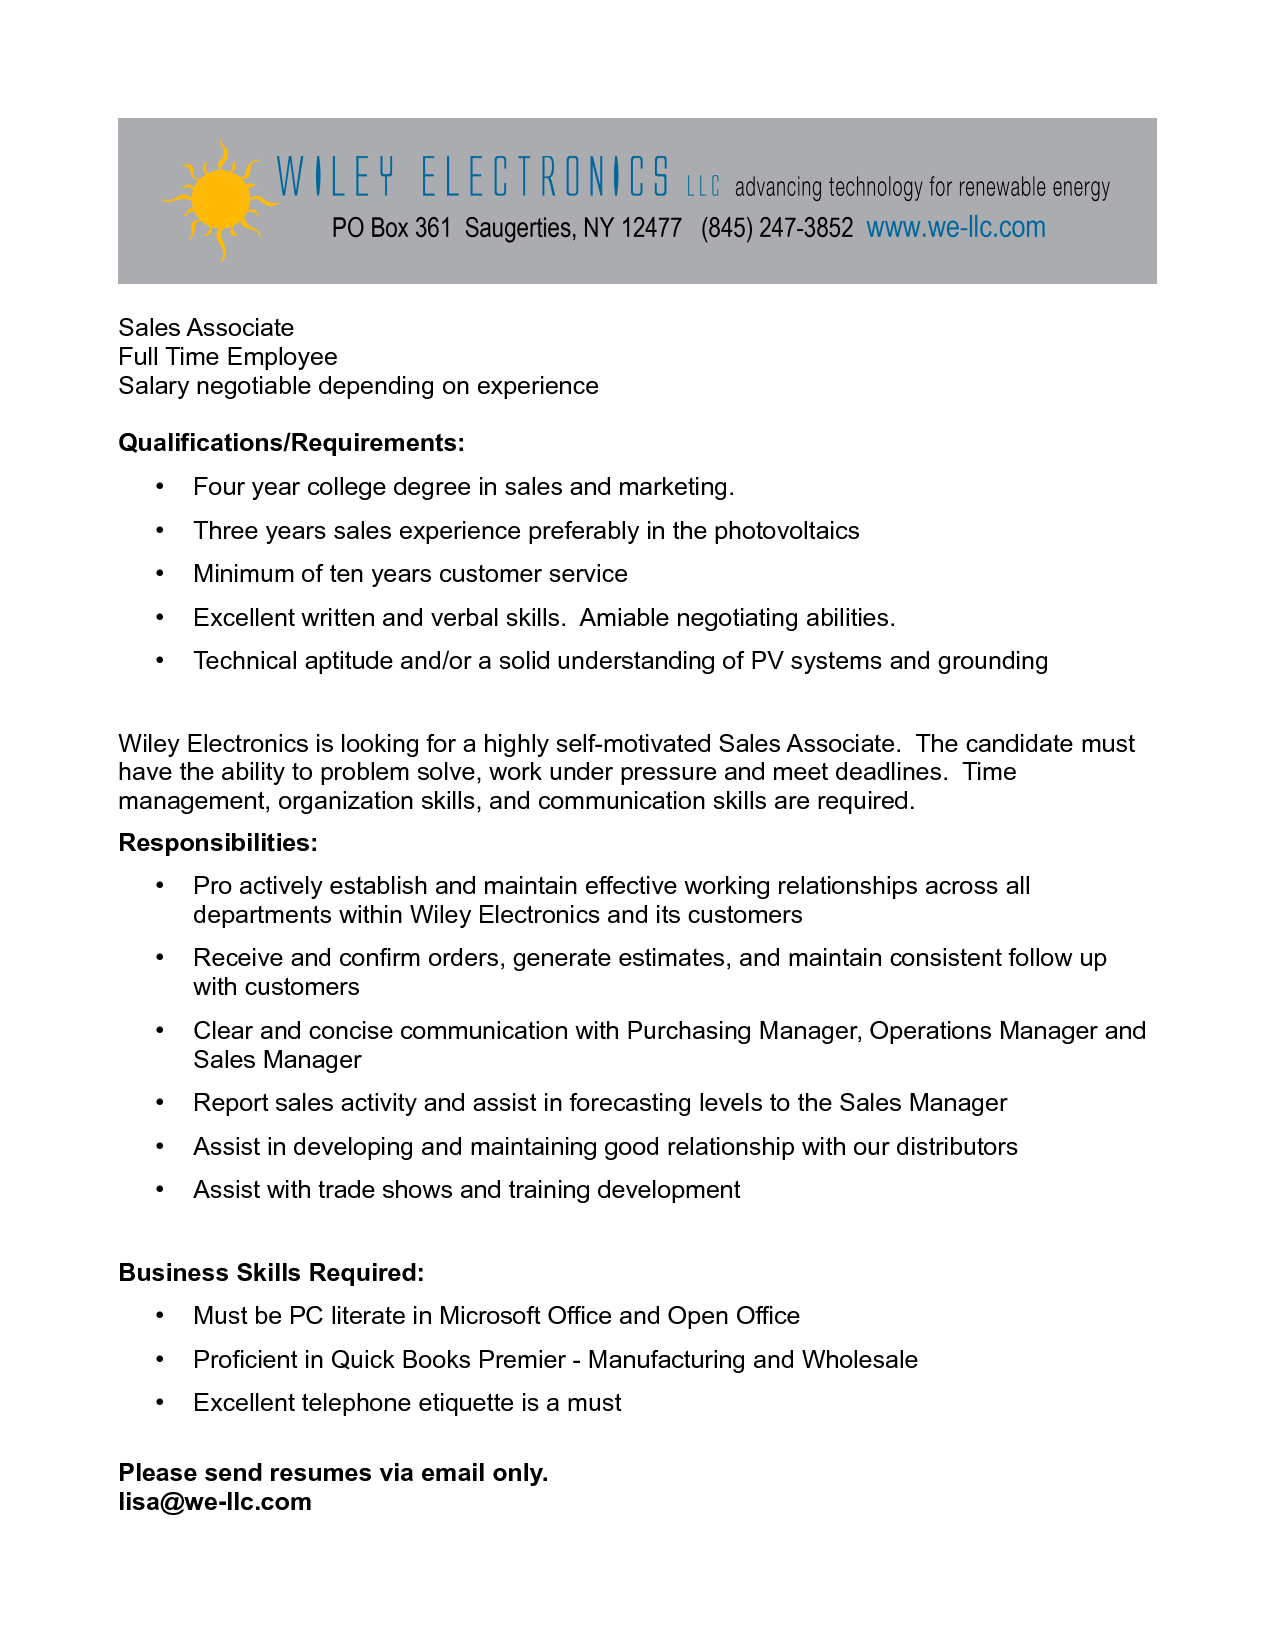 resume cover letter for retail sales associate